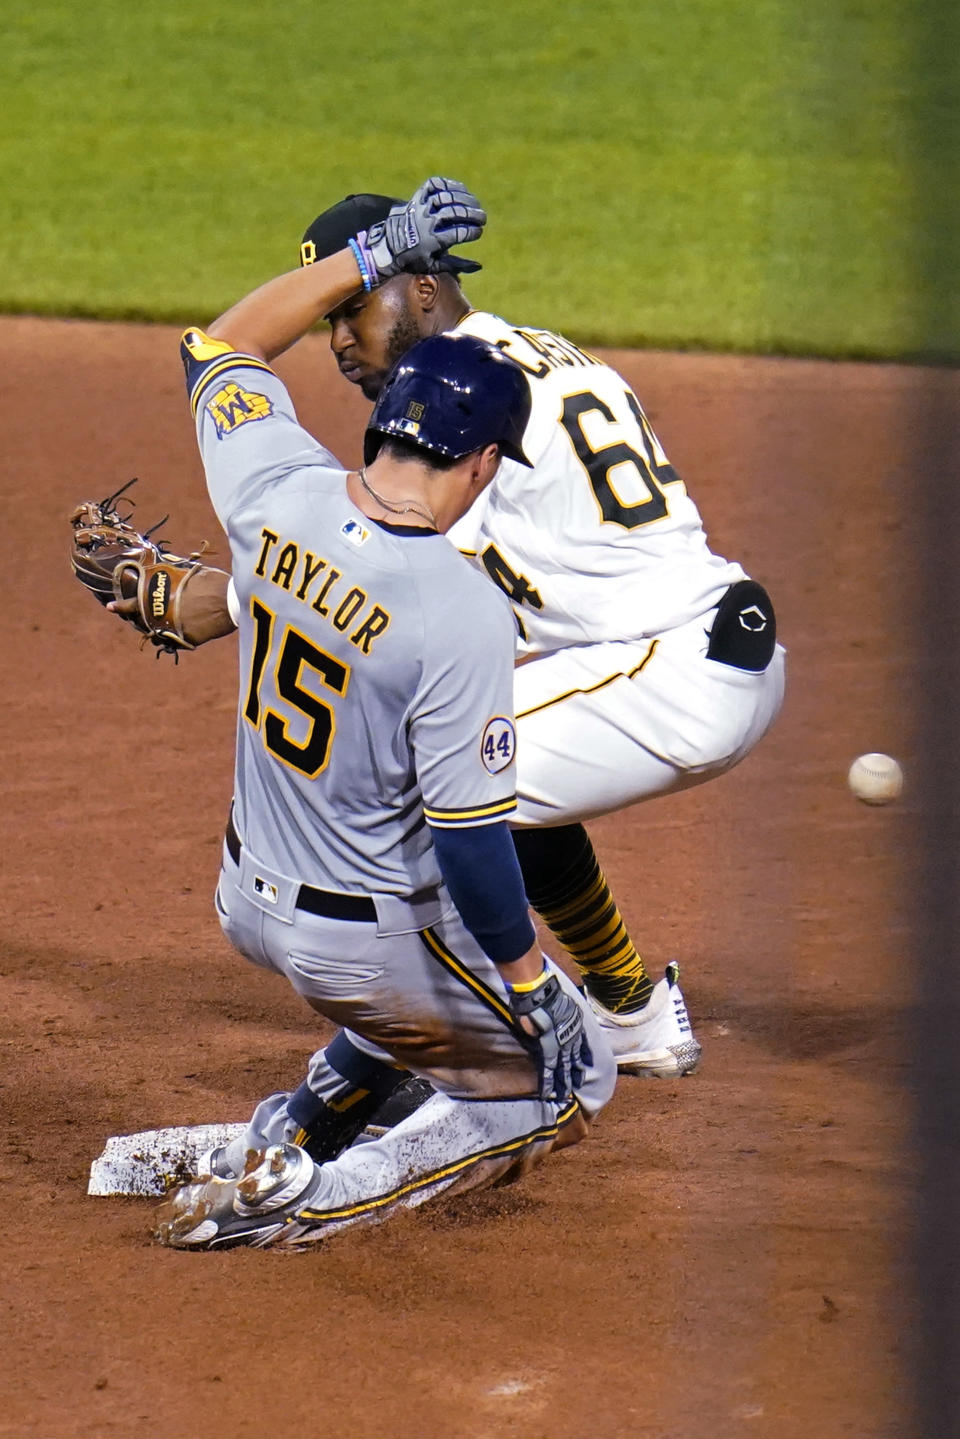 Milwaukee Brewers' Tyrone Taylor (15) slides safely into second with an RBI double as the relay throw gets past Pittsburgh Pirates second baseman Rodolfo Castro during the sixth inning of a baseball game in Pittsburgh, Thursday, July 29, 2021. (AP Photo/Gene J. Puskar)